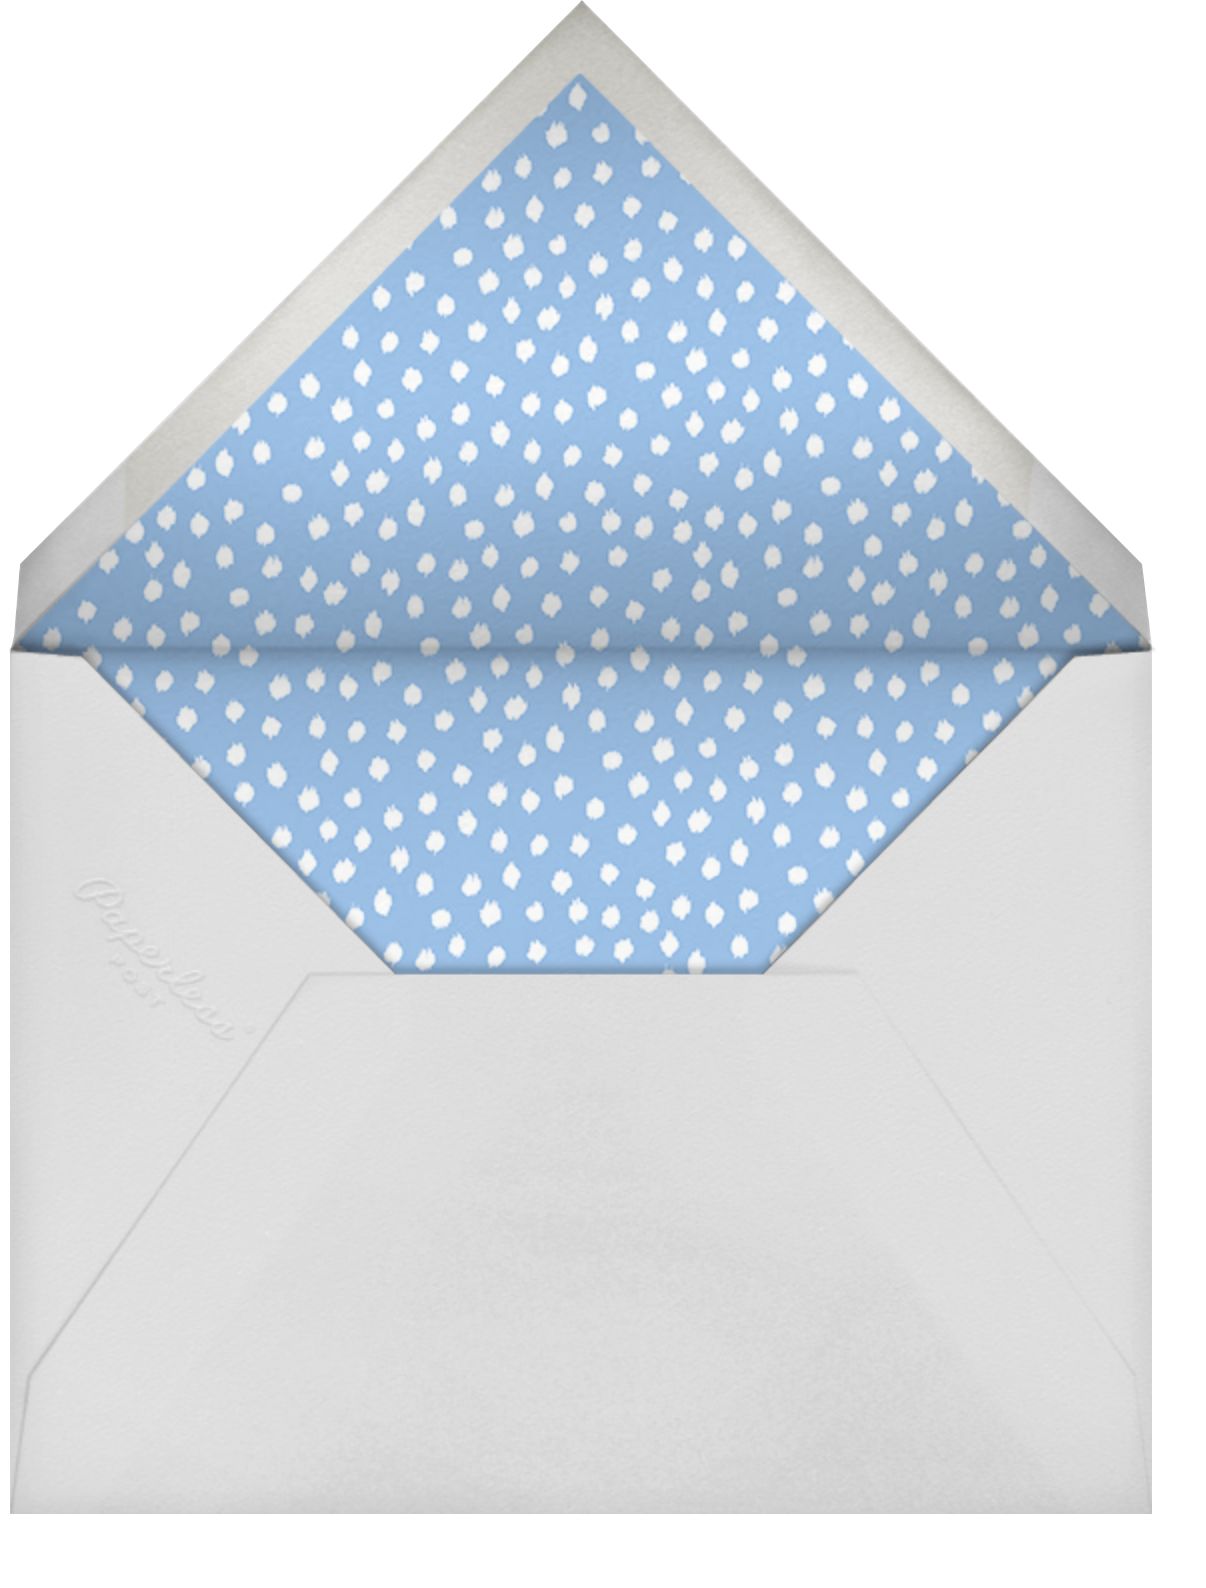 Ikat Dot (Square) - Light Blue - Oscar de la Renta - Baby shower - envelope back